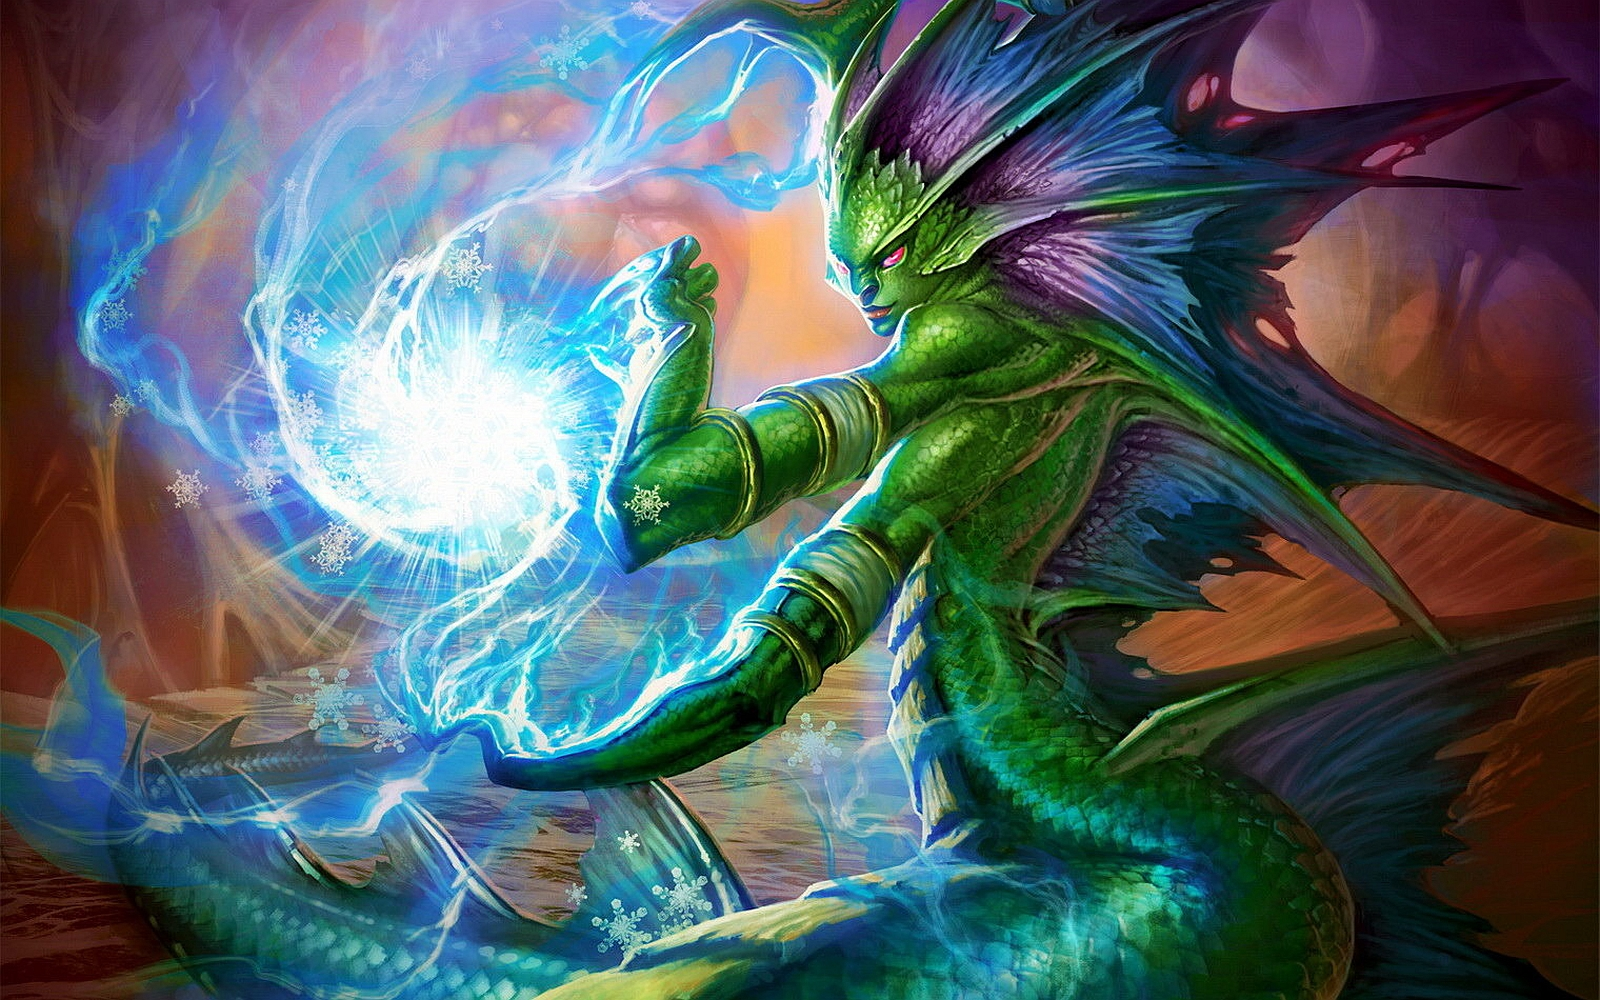 http://3.bp.blogspot.com/--qtxQOUr_Jk/UHa3eXy4PCI/AAAAAAAADZM/aegBDXX5o44/s1600/naga-sea-witch-world-of-warcraft-desktop-background.jpg